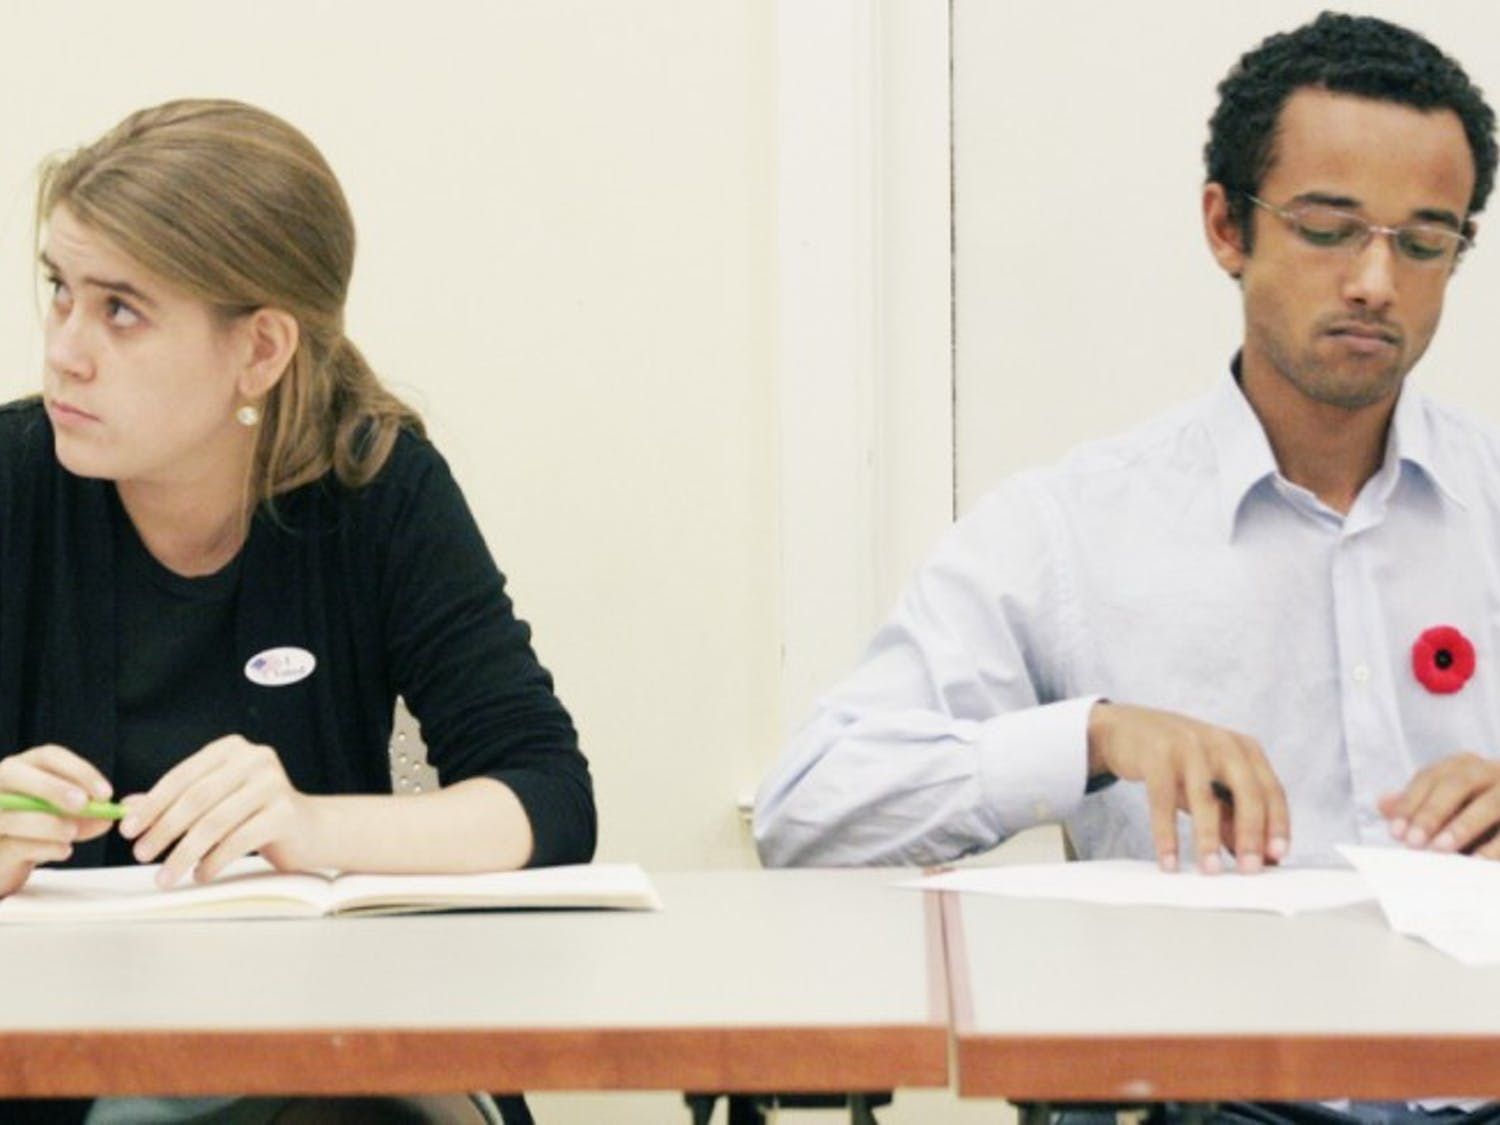 mary cooper tuition forum, 6pm, upendu lounge of sasb